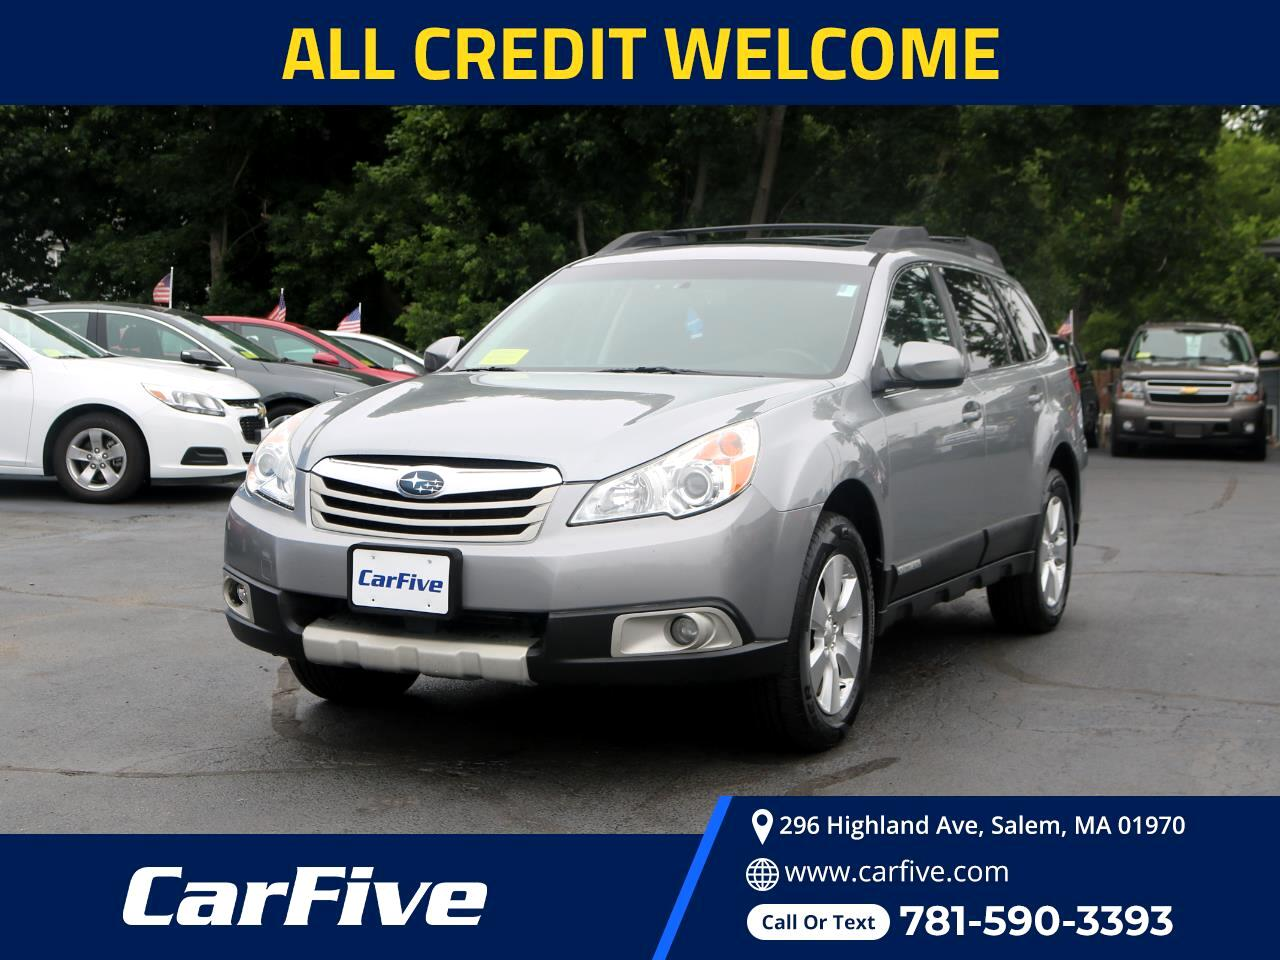 Subaru Outback 4dr Wgn H6 Auto 3.6R Limited Pwr Moon/Nav 2011